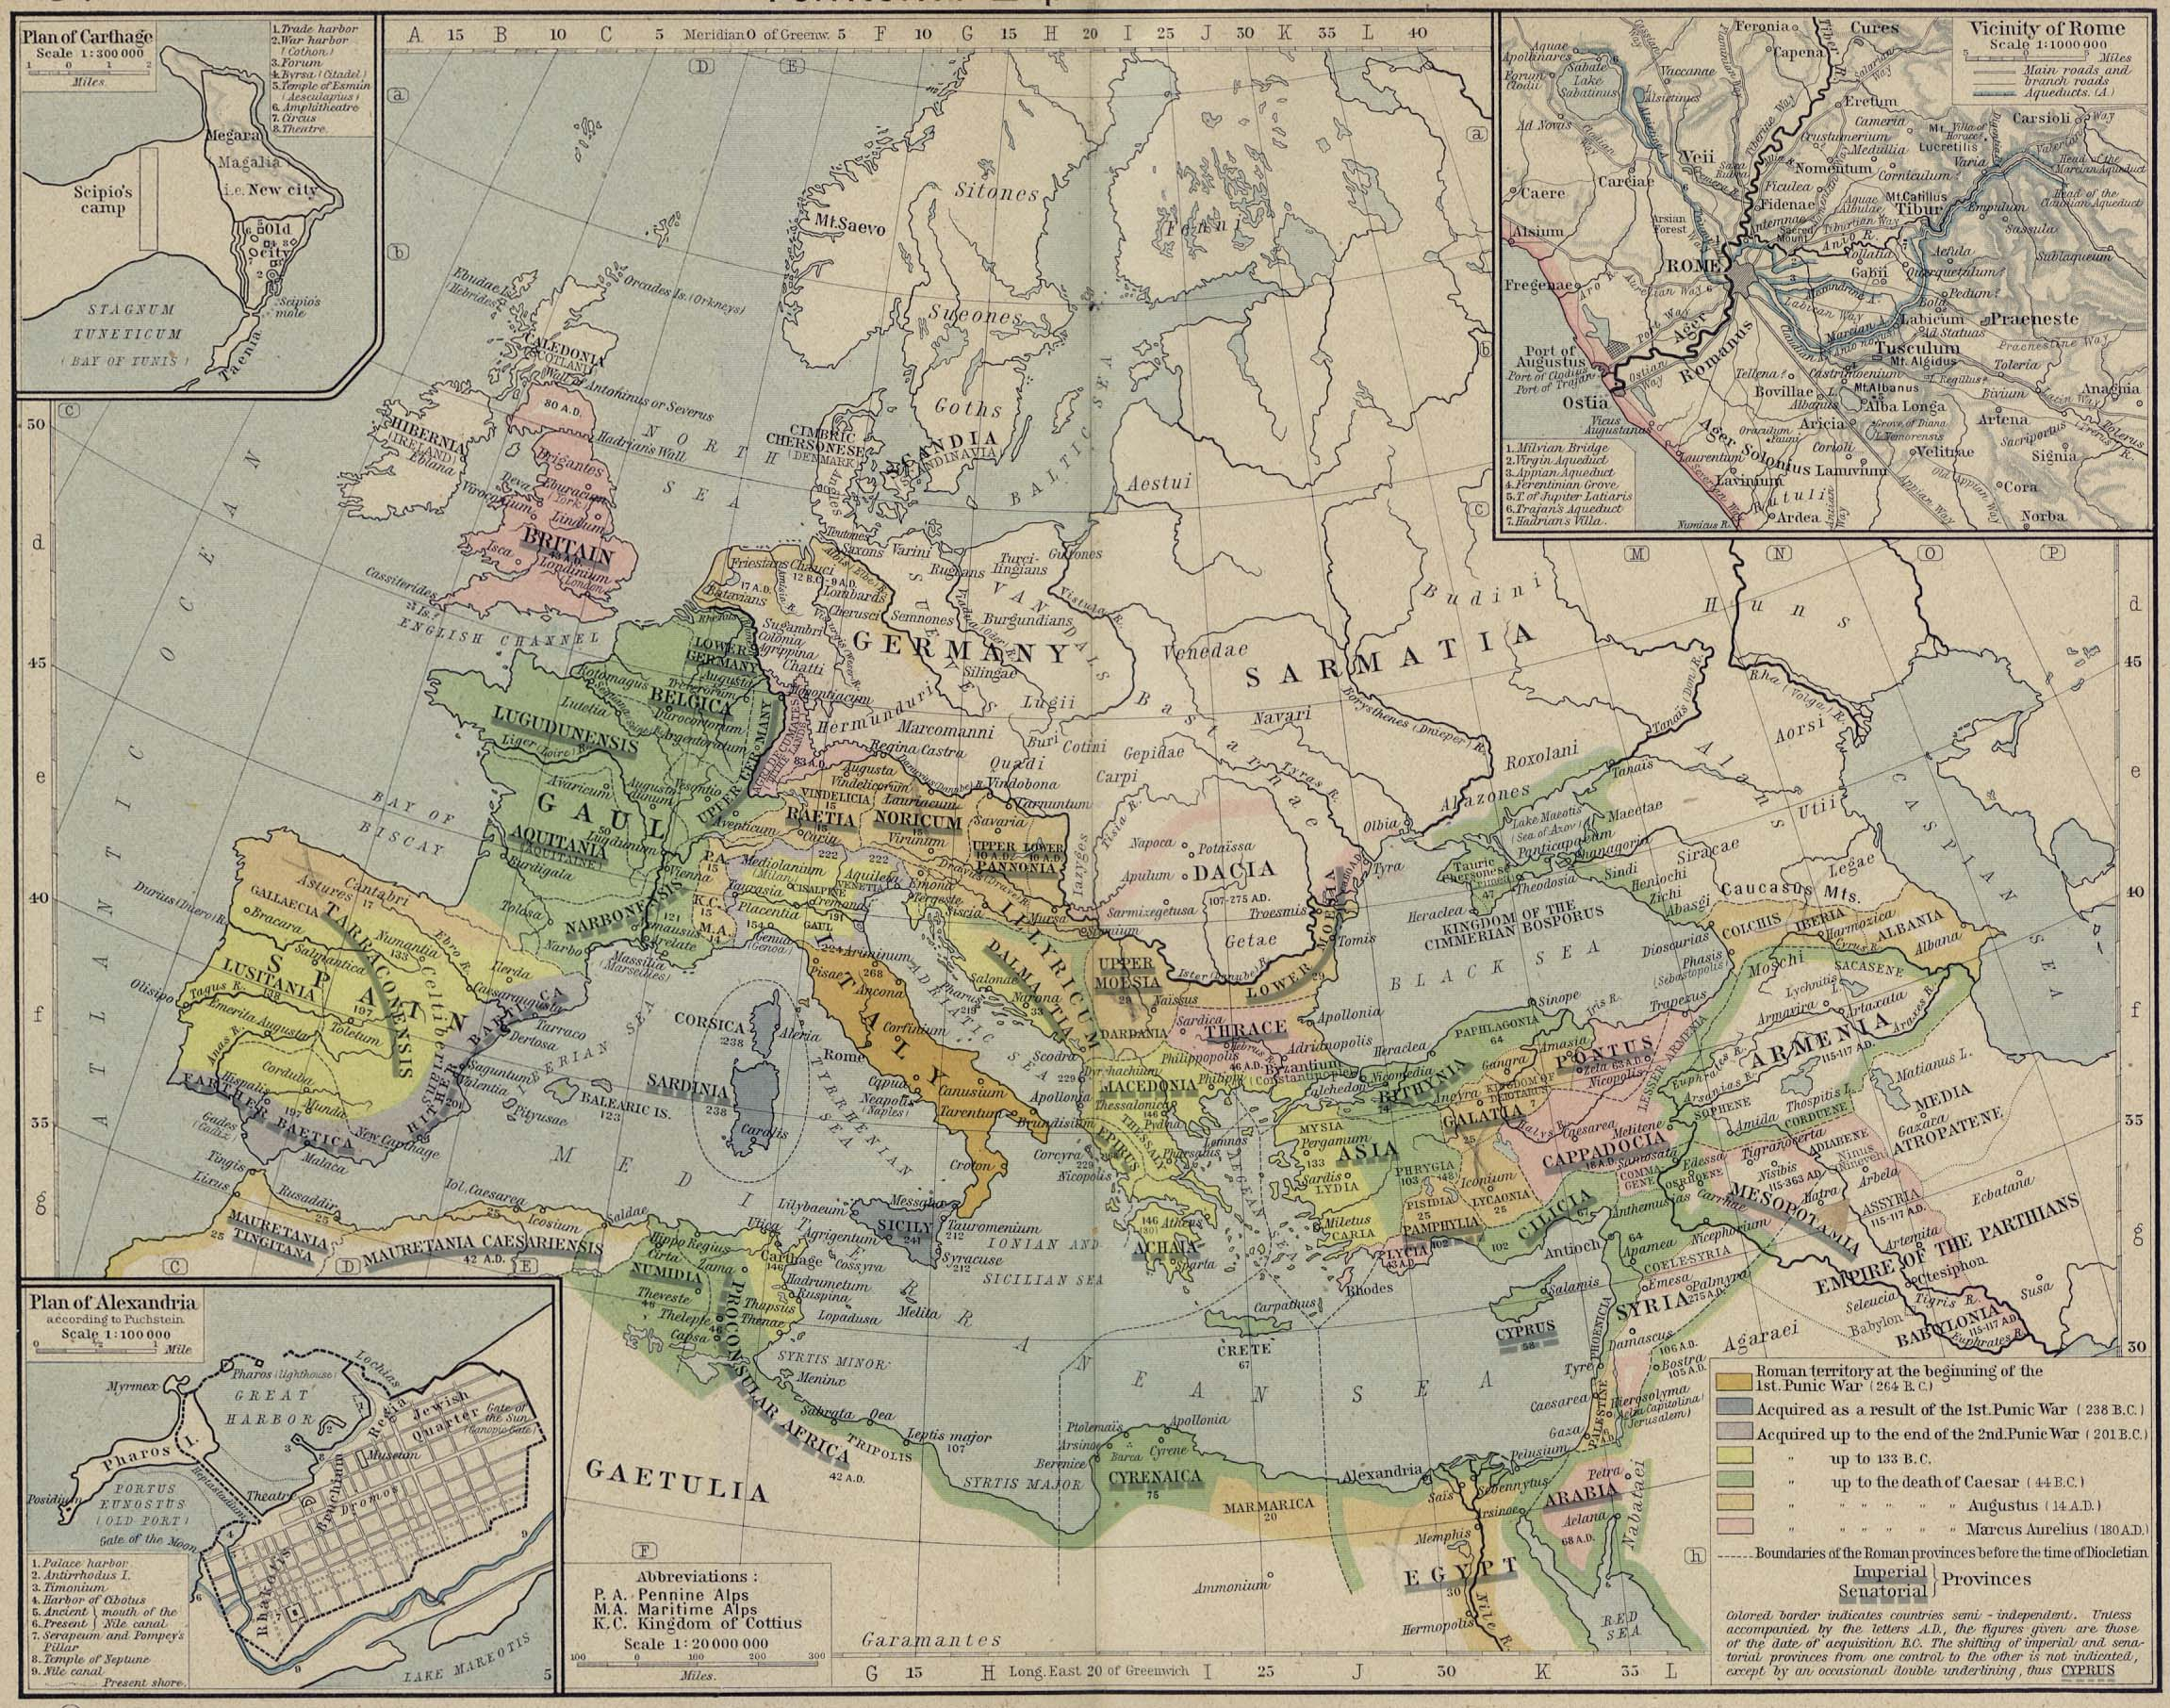 Map of Roman Empire264 BC - AD 180with insets of Alexandria, Carthage, and Rome